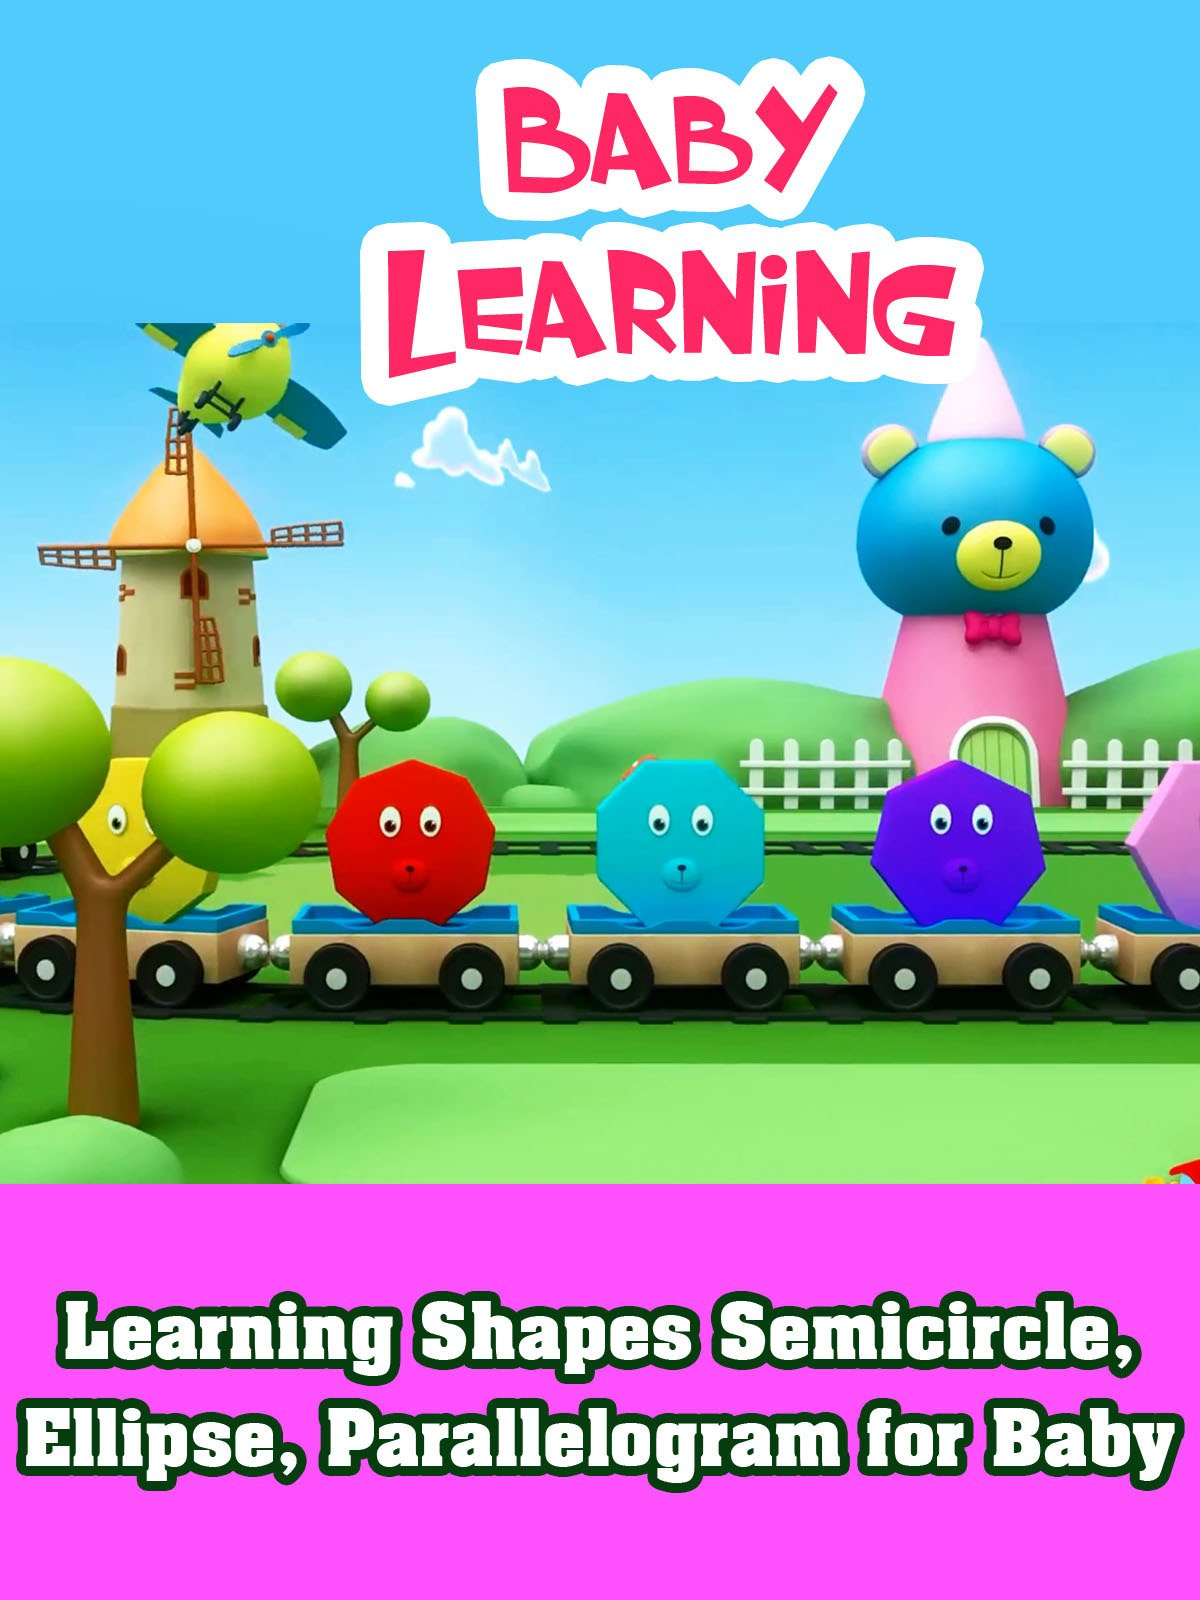 Learning Shapes Semicircle, Ellipse, Parallelogram for Baby